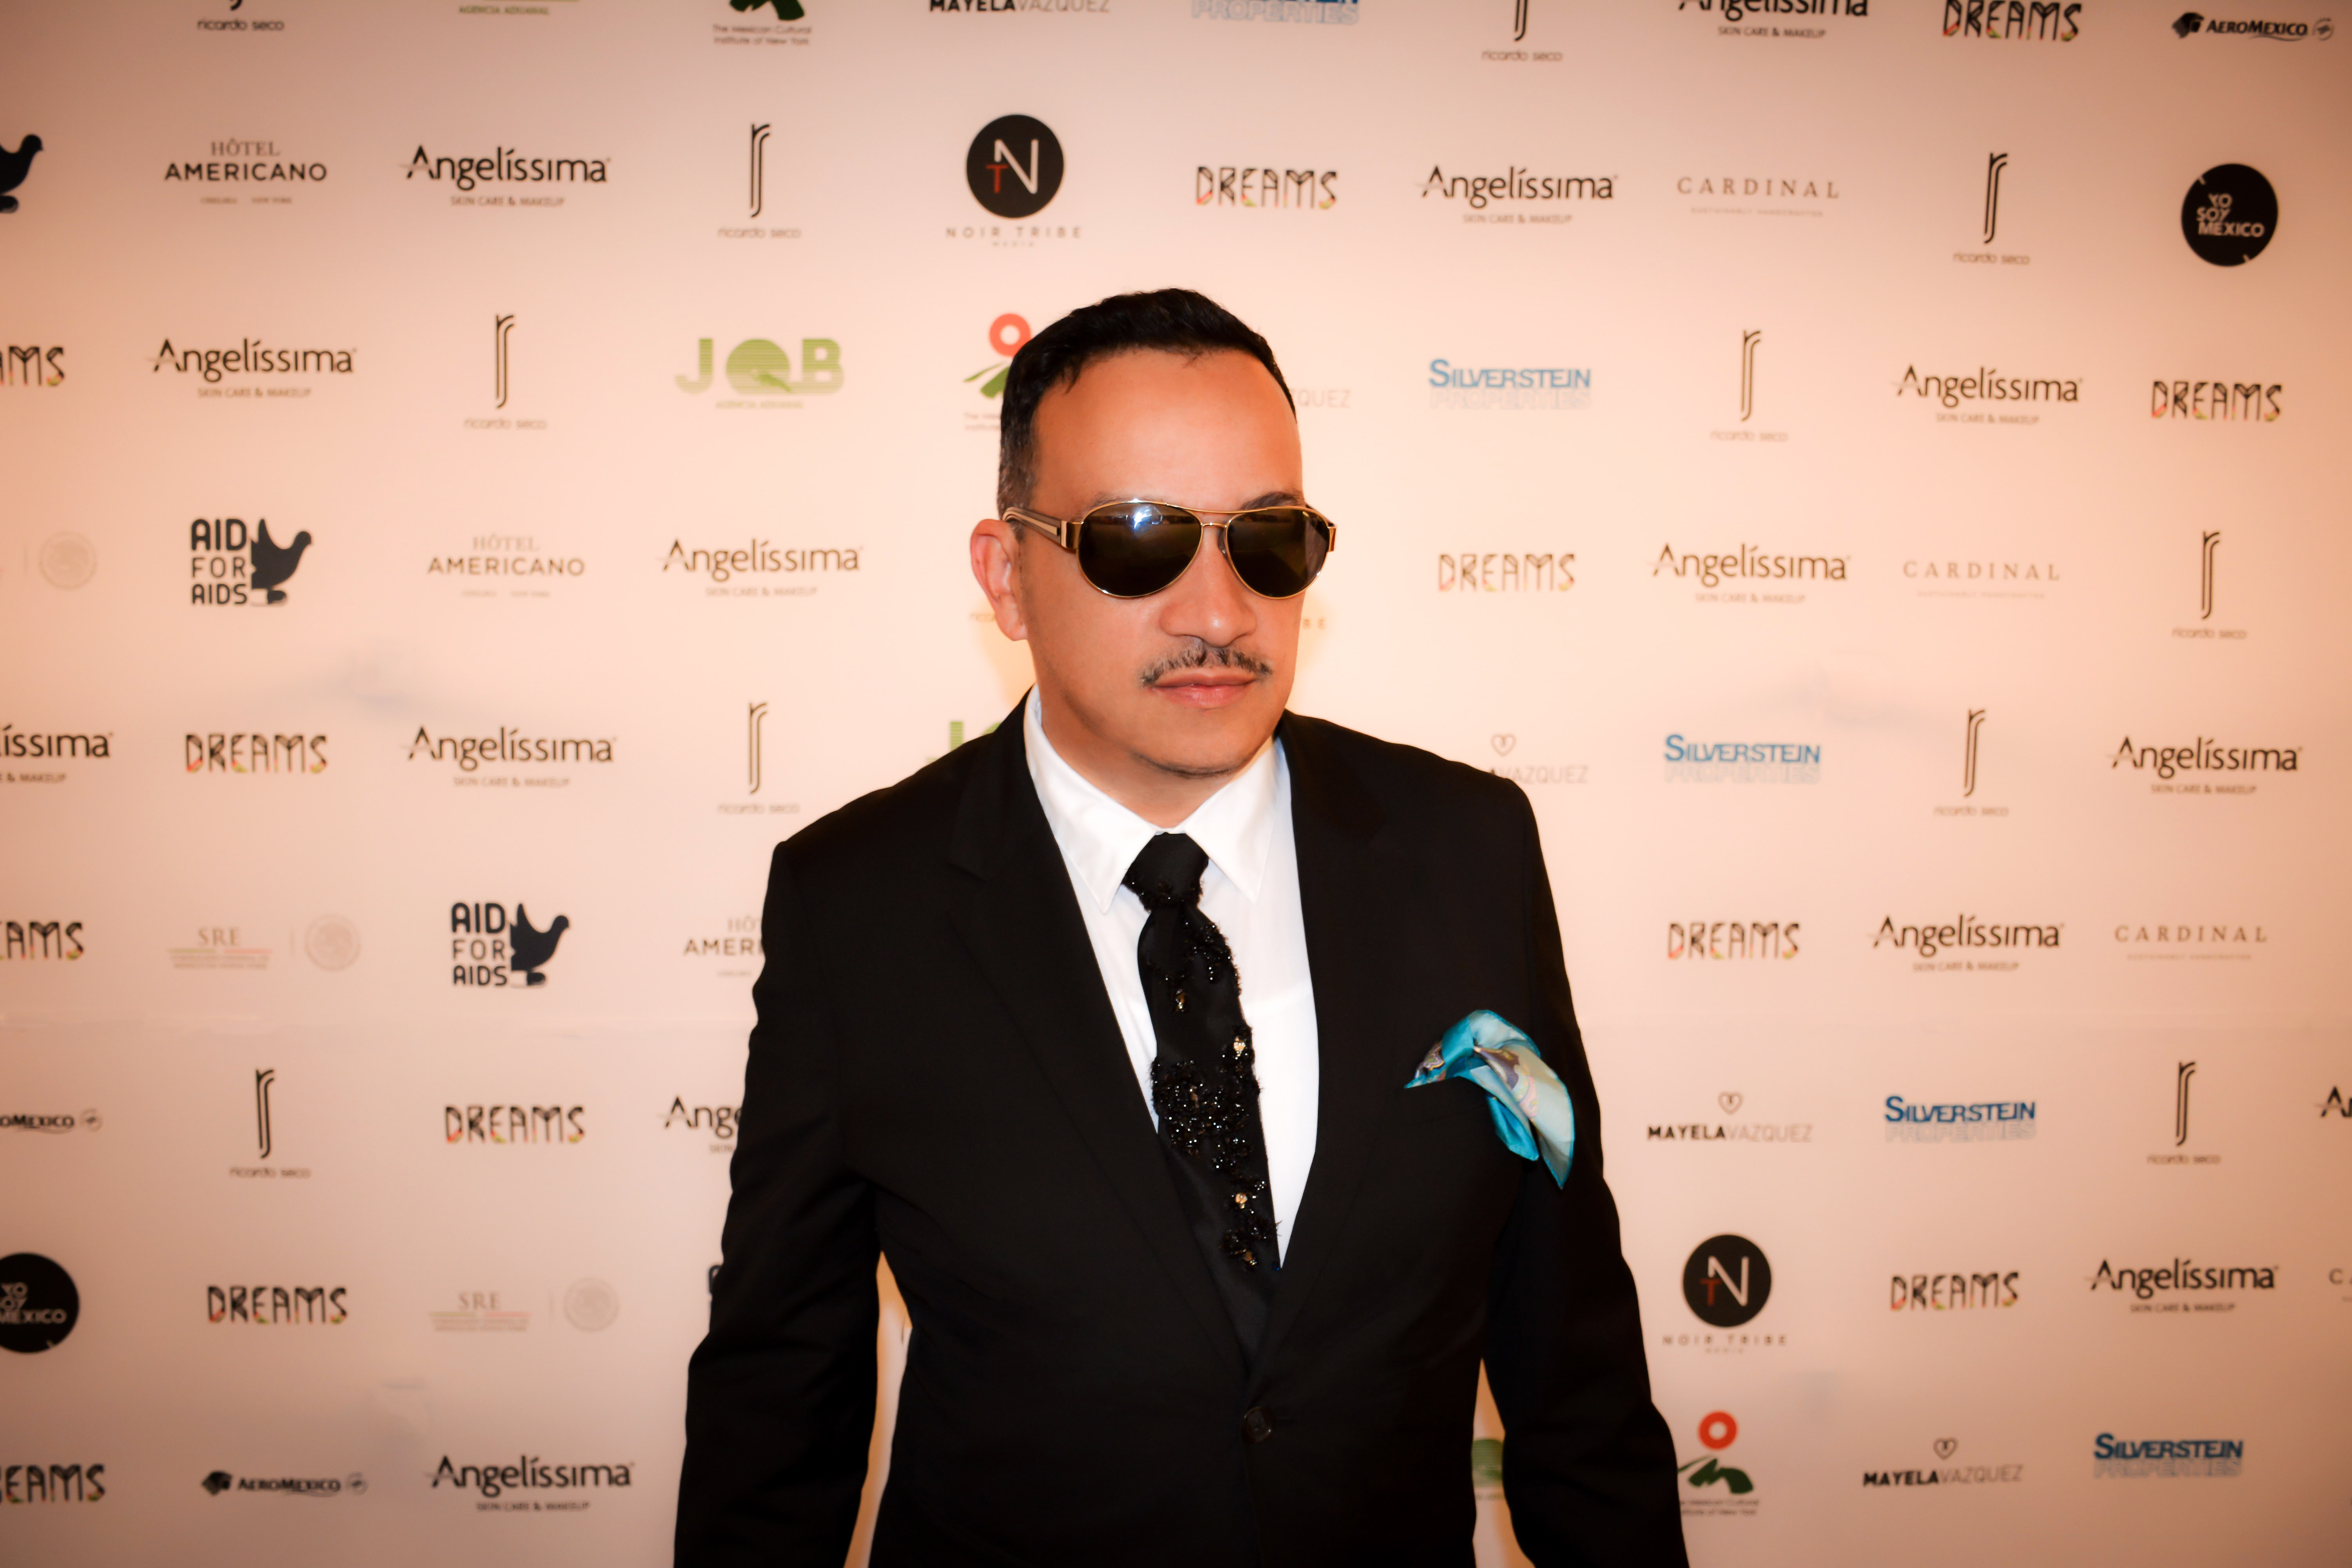 Anthony Rubio on the red carpet at Ricardo Seco's Fashion Show for Mercedes-Benz Fashion Week